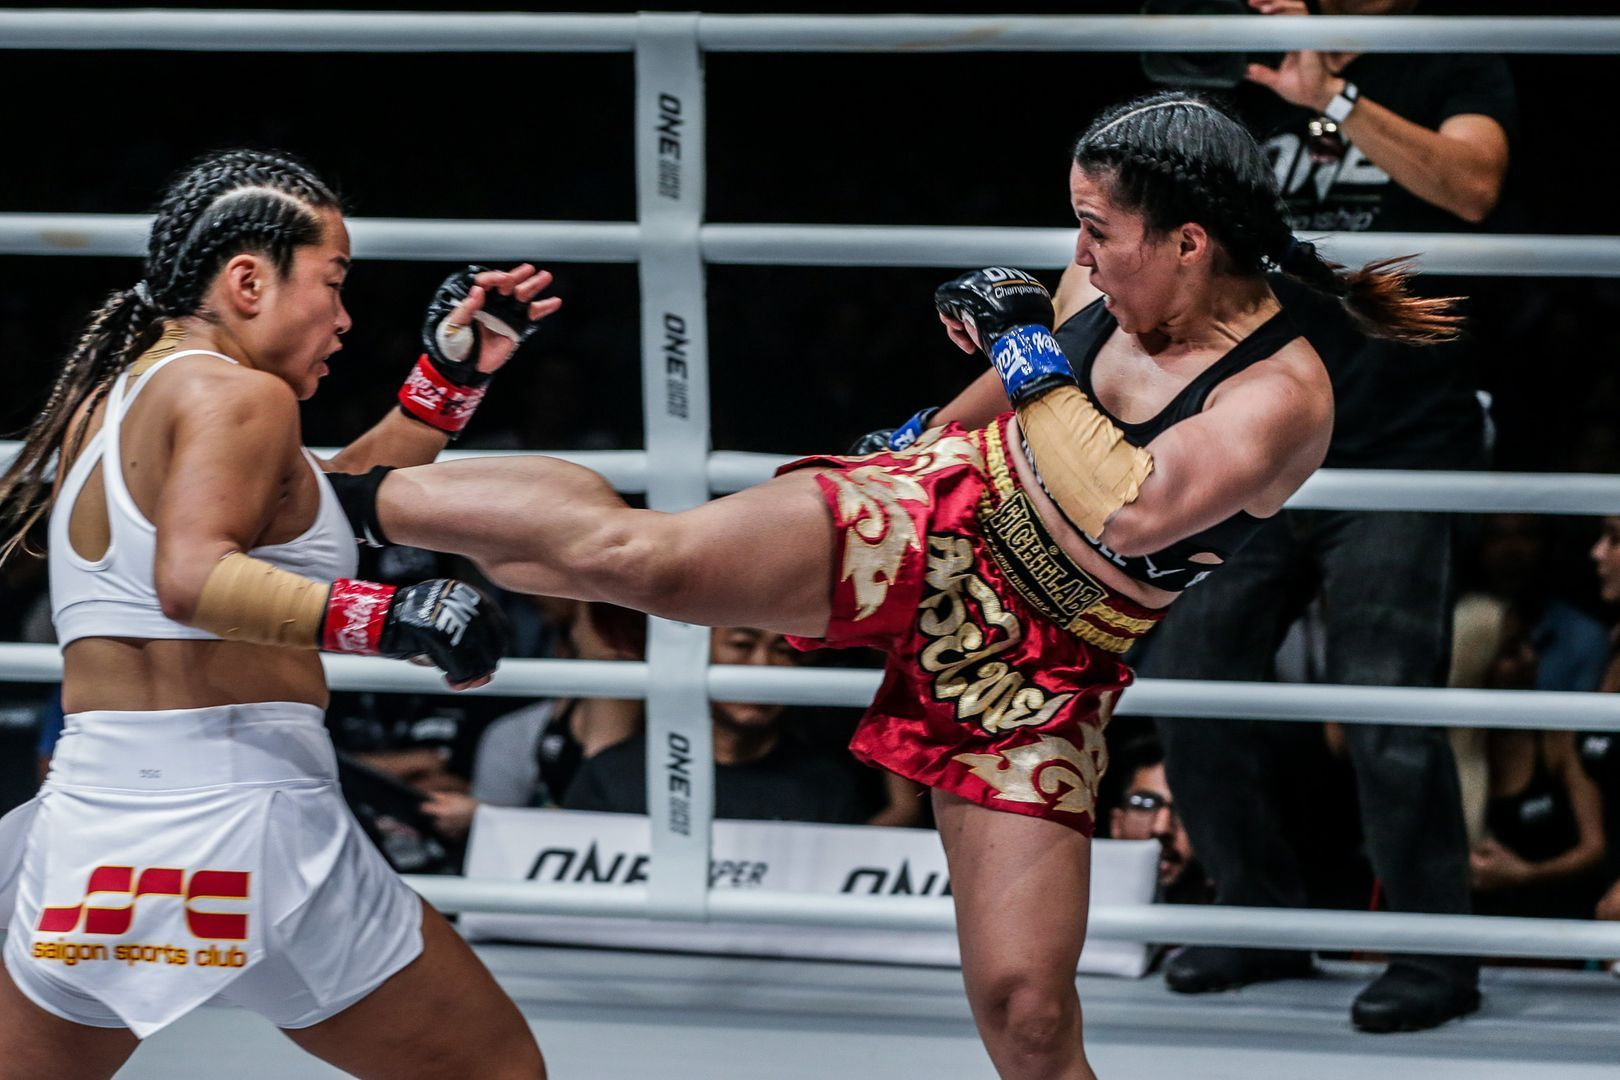 India's Puja Tomar finds an opening and kicks Vietnam's Bi Nguyen